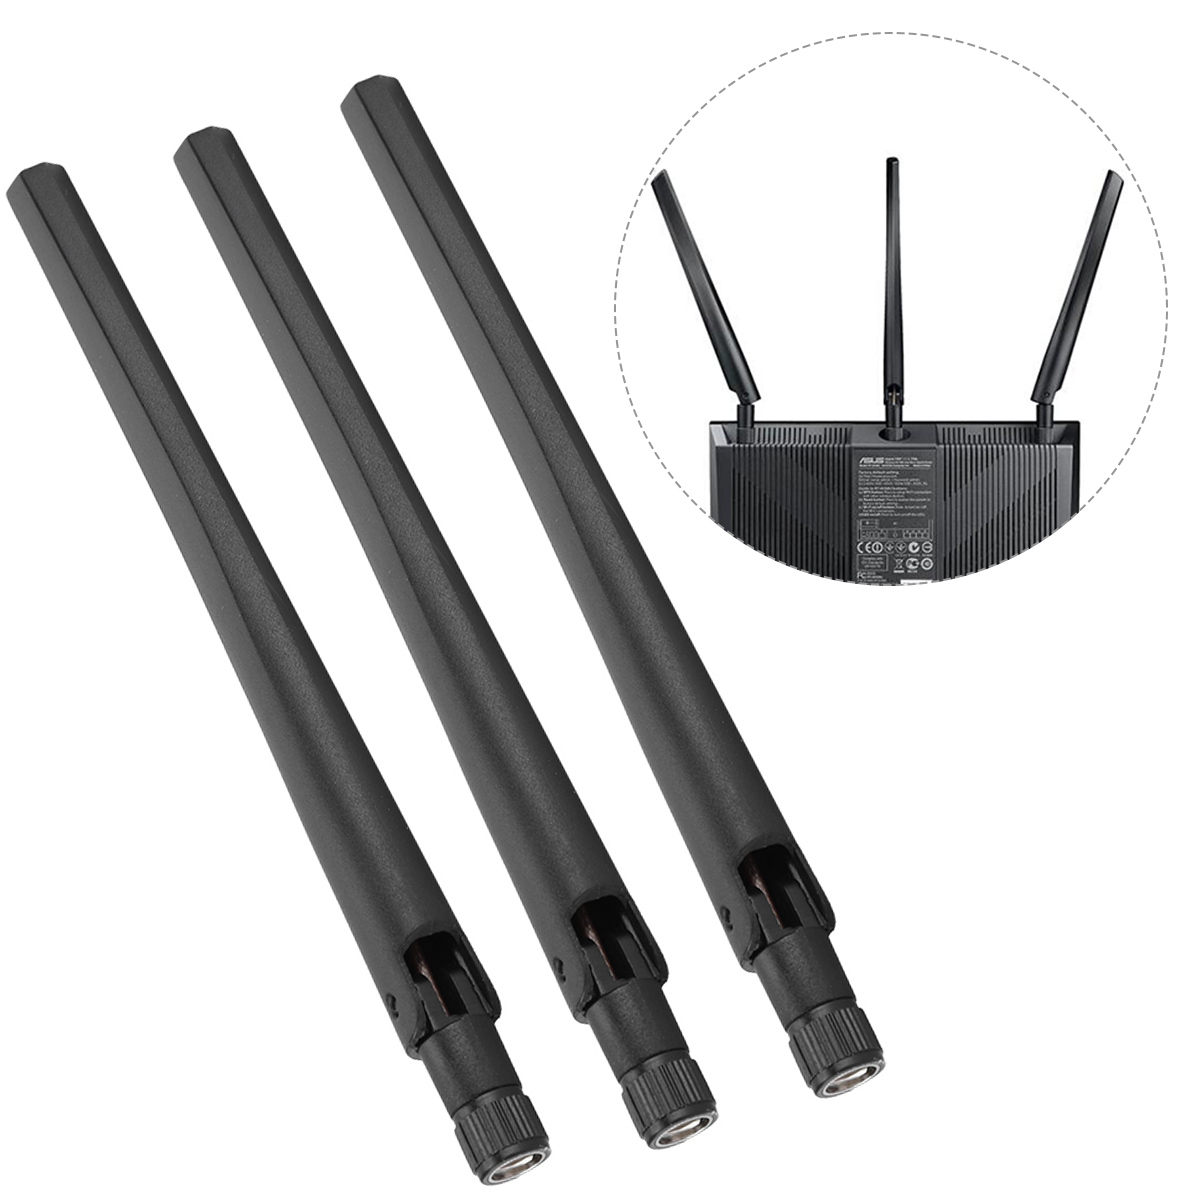 WiFi Router Antenna Of RP-SMA Interface Gain 5dBi For ASUS RT-AC68U AC66U 2.4G/5G Dual Band Wireless LAN Wifi Antenna Booster